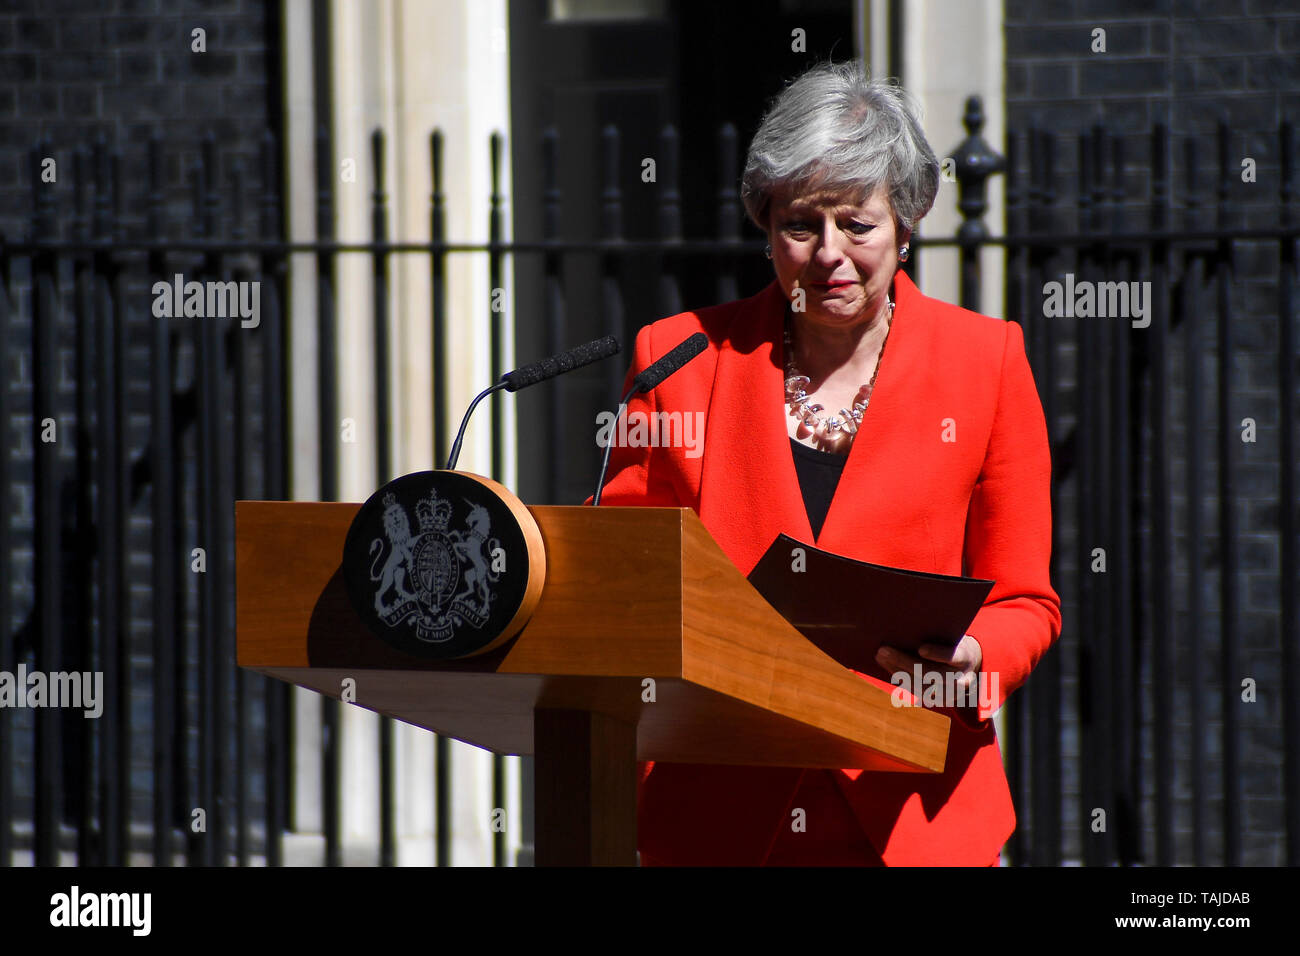 Beijing, China. 24th May, 2019. British Prime Minister Theresa May speaks to the media outside 10 Downing Street in London, Britain on May 24, 2019. Theresa May said on Friday that she will quit as Conservative leader on June 7, paving ways for contest to decide Britain's next prime minister. Credit: Alberto Pezzali/Xinhua/Alamy Live News - Stock Image